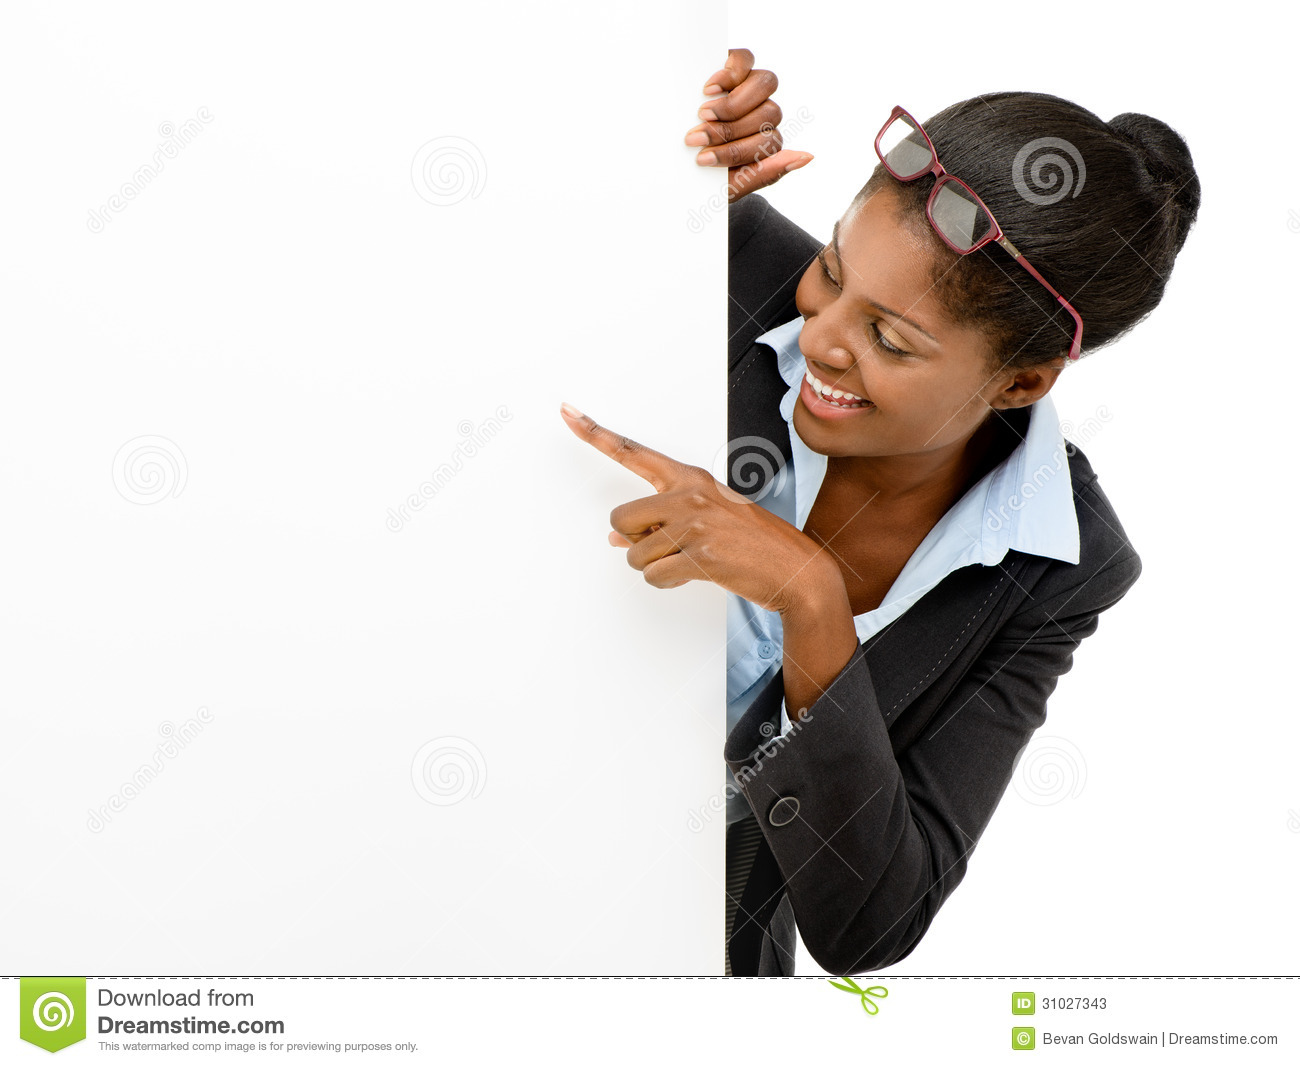 happy-african-american-woman-pointing-billboard-sign-white-background-business-smiling-31027343.jpg